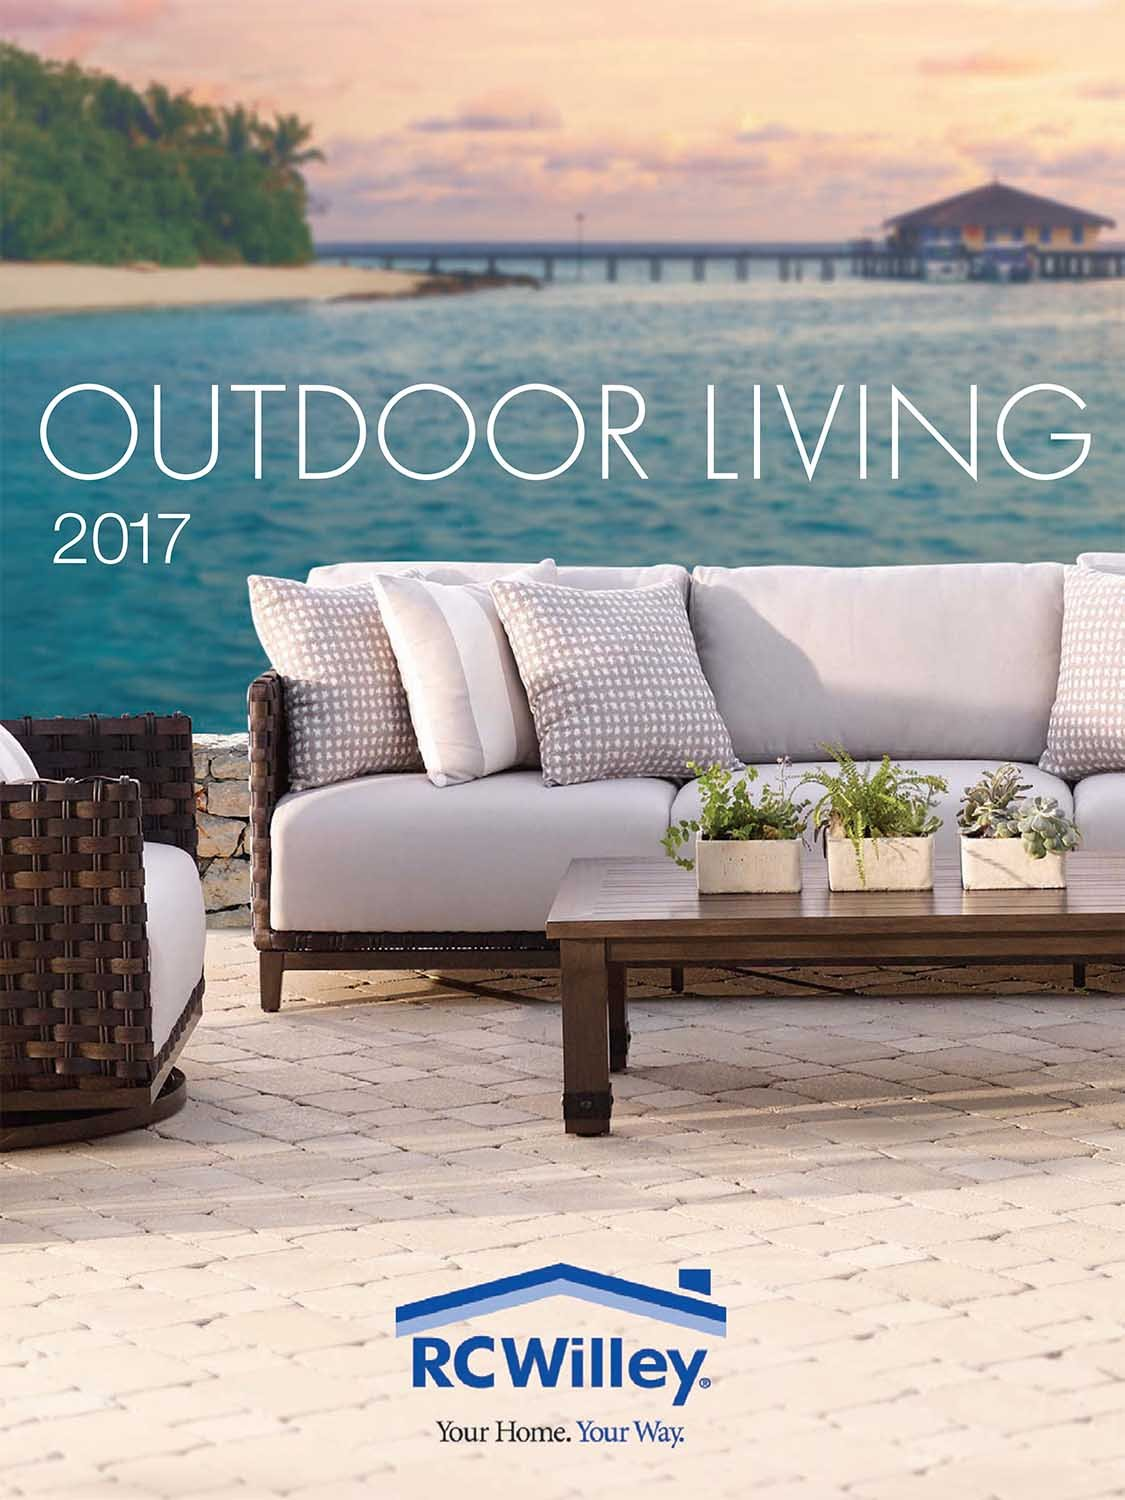 Outdoor Living - Spring 2017 Patio Catalog   RC Willey ... on Outdoor Living Shop id=42238